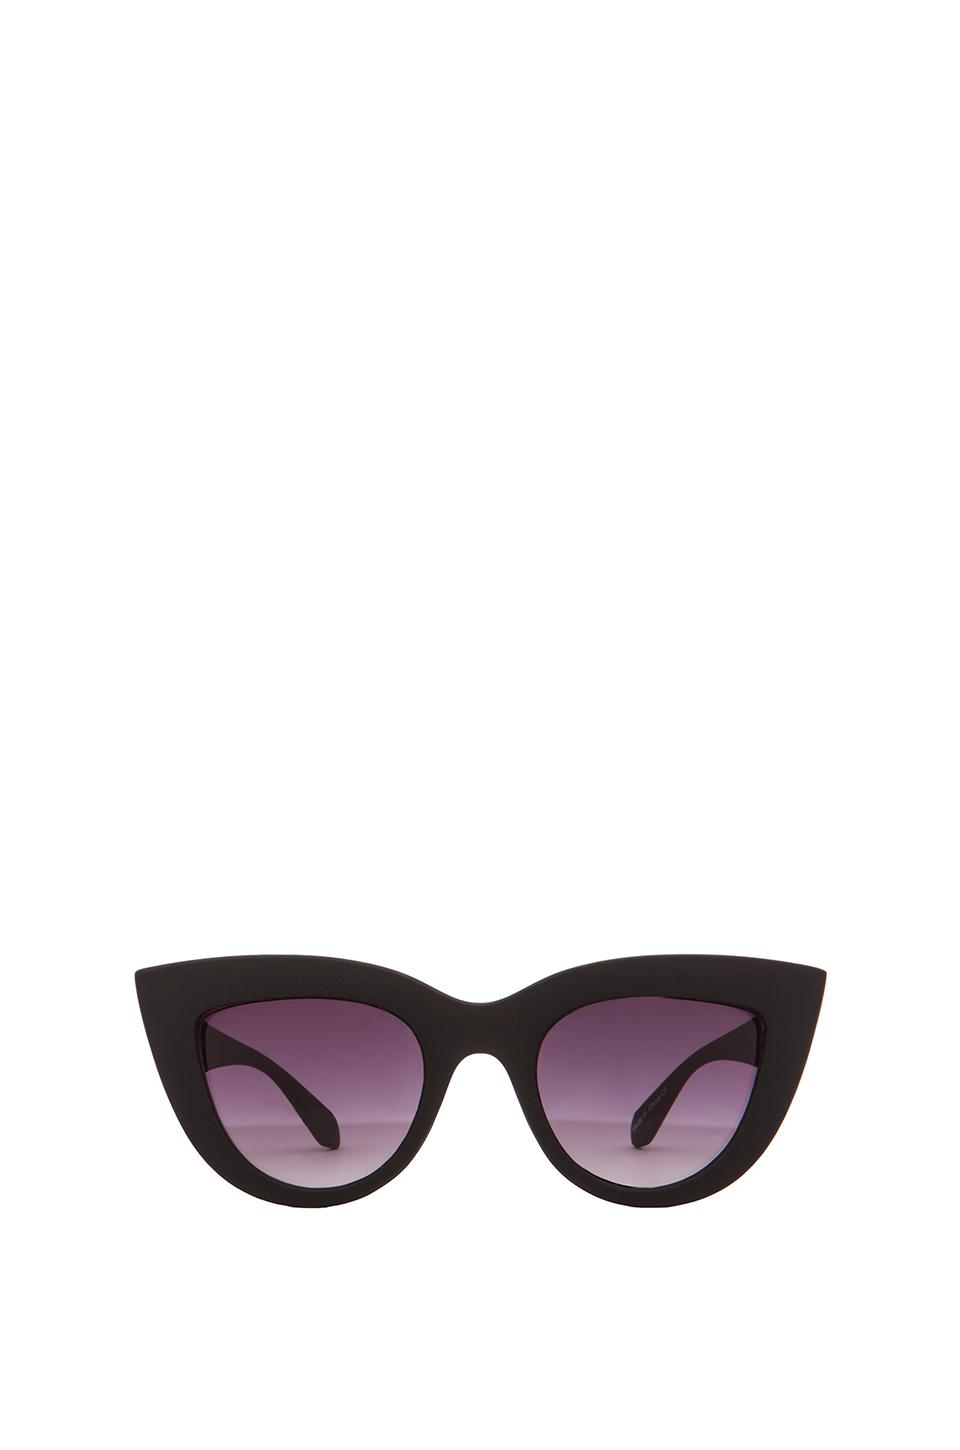 Quay kitti sunglasses in black from revolveclothing.com